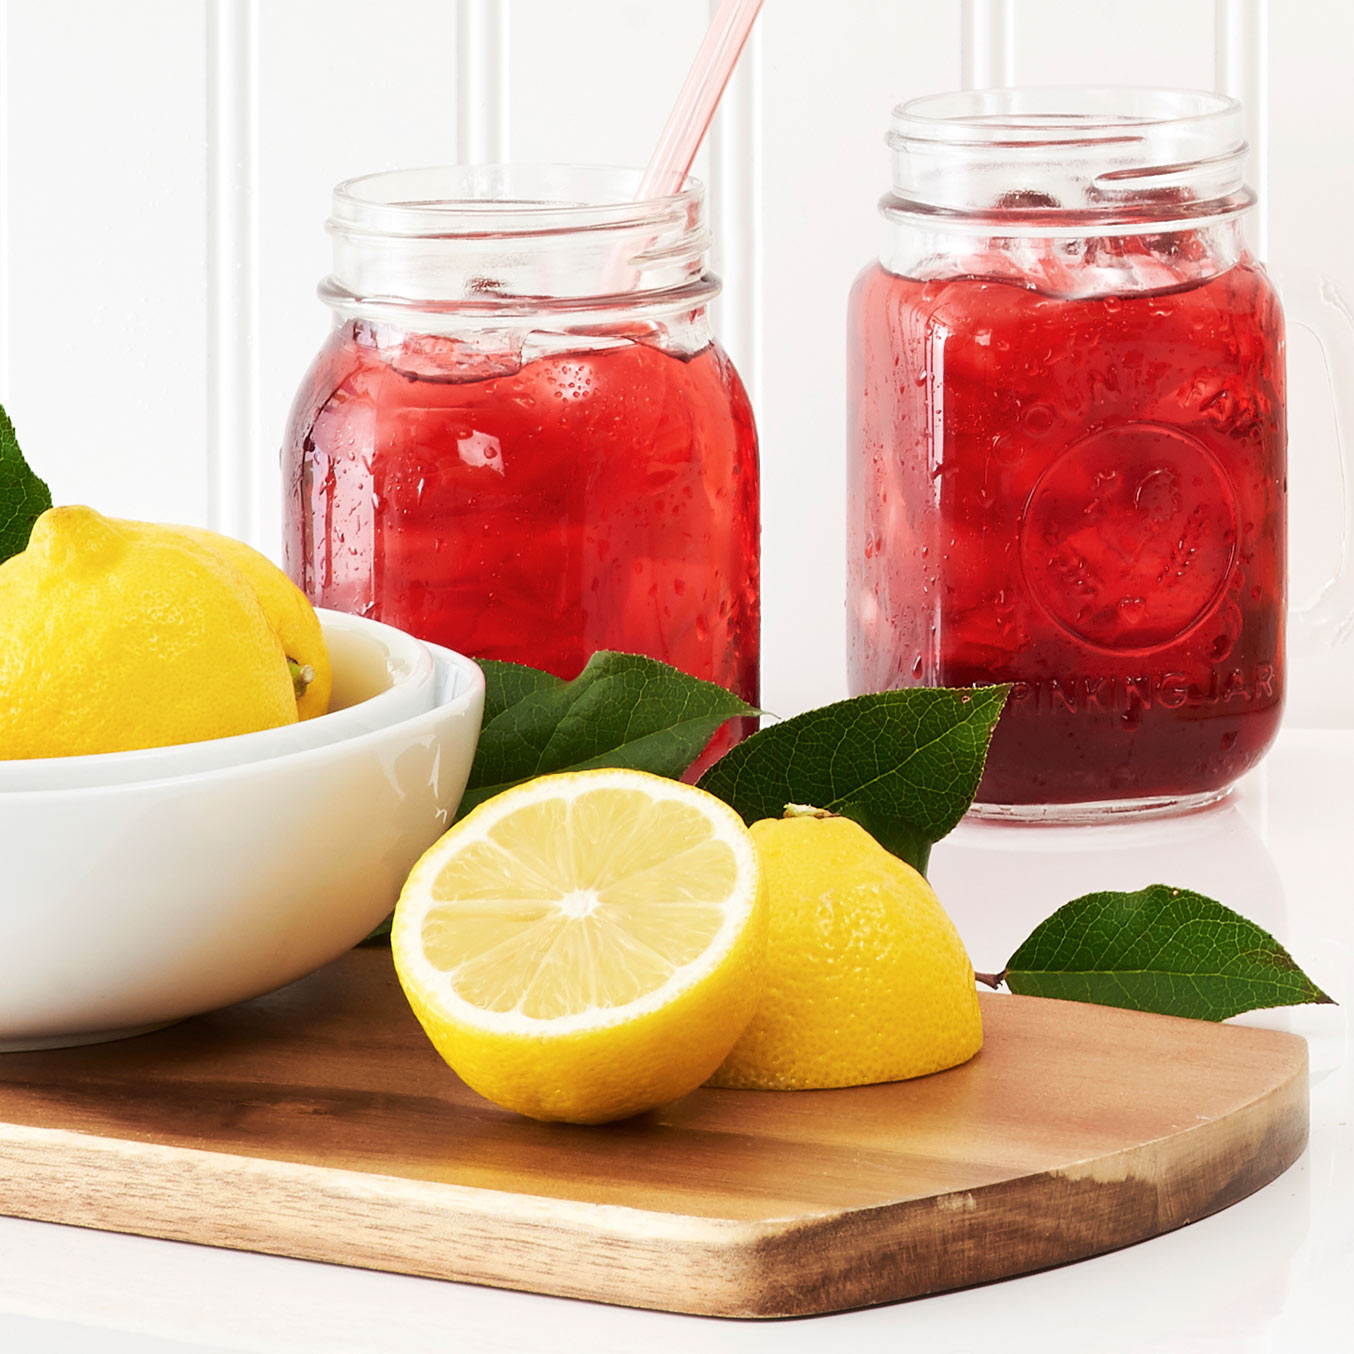 Two glass jars filled with iced tea next to a sliced lemon.